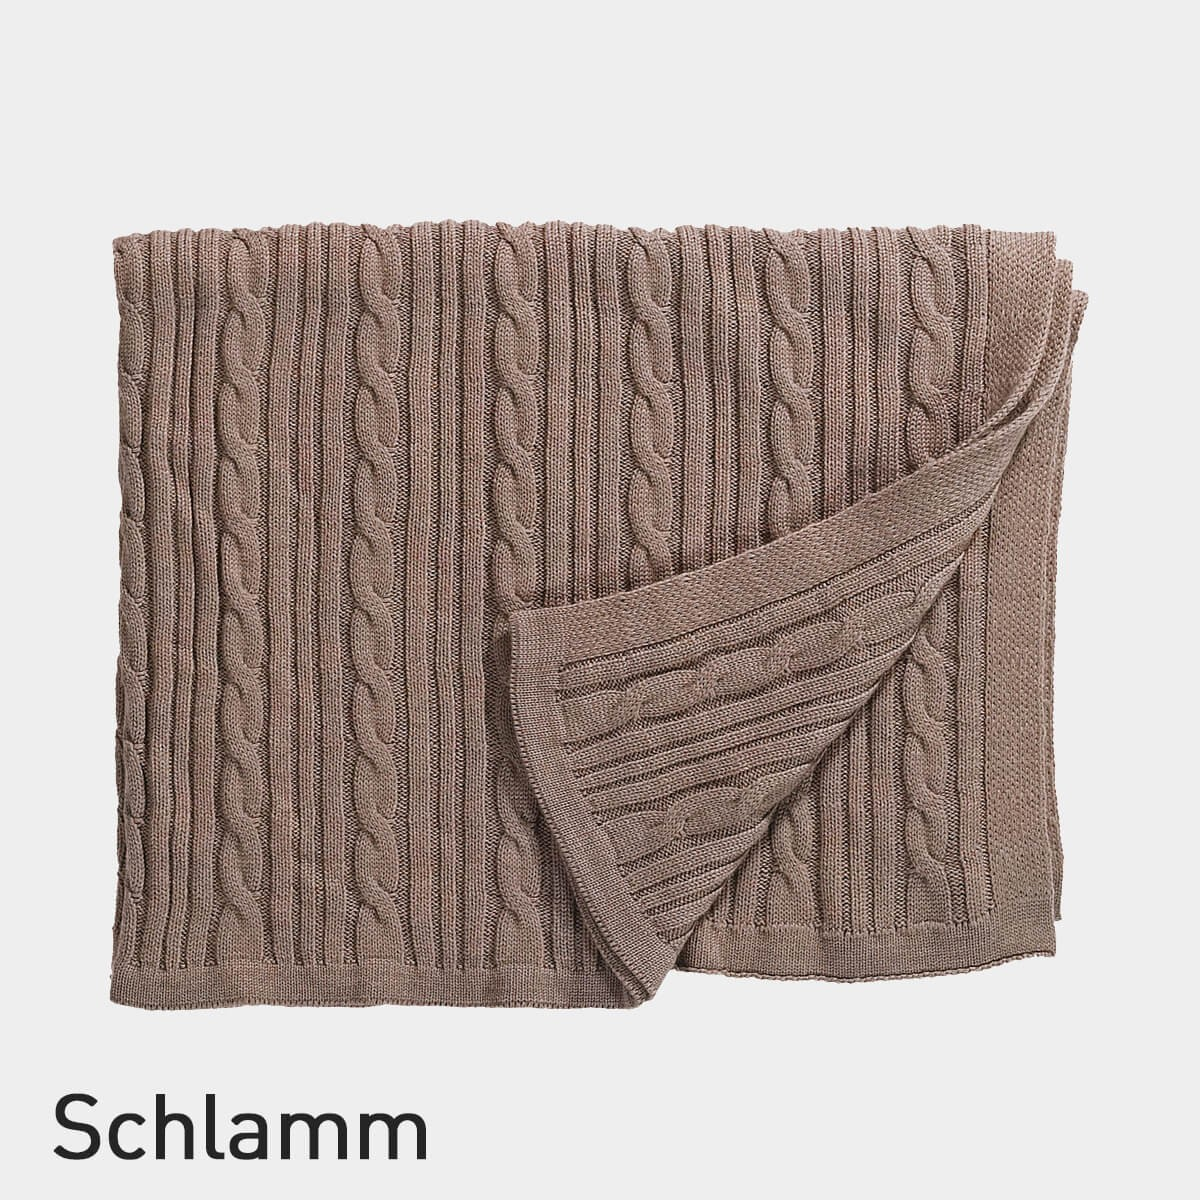 Eagle Products San Marco Plaid - Schlamm